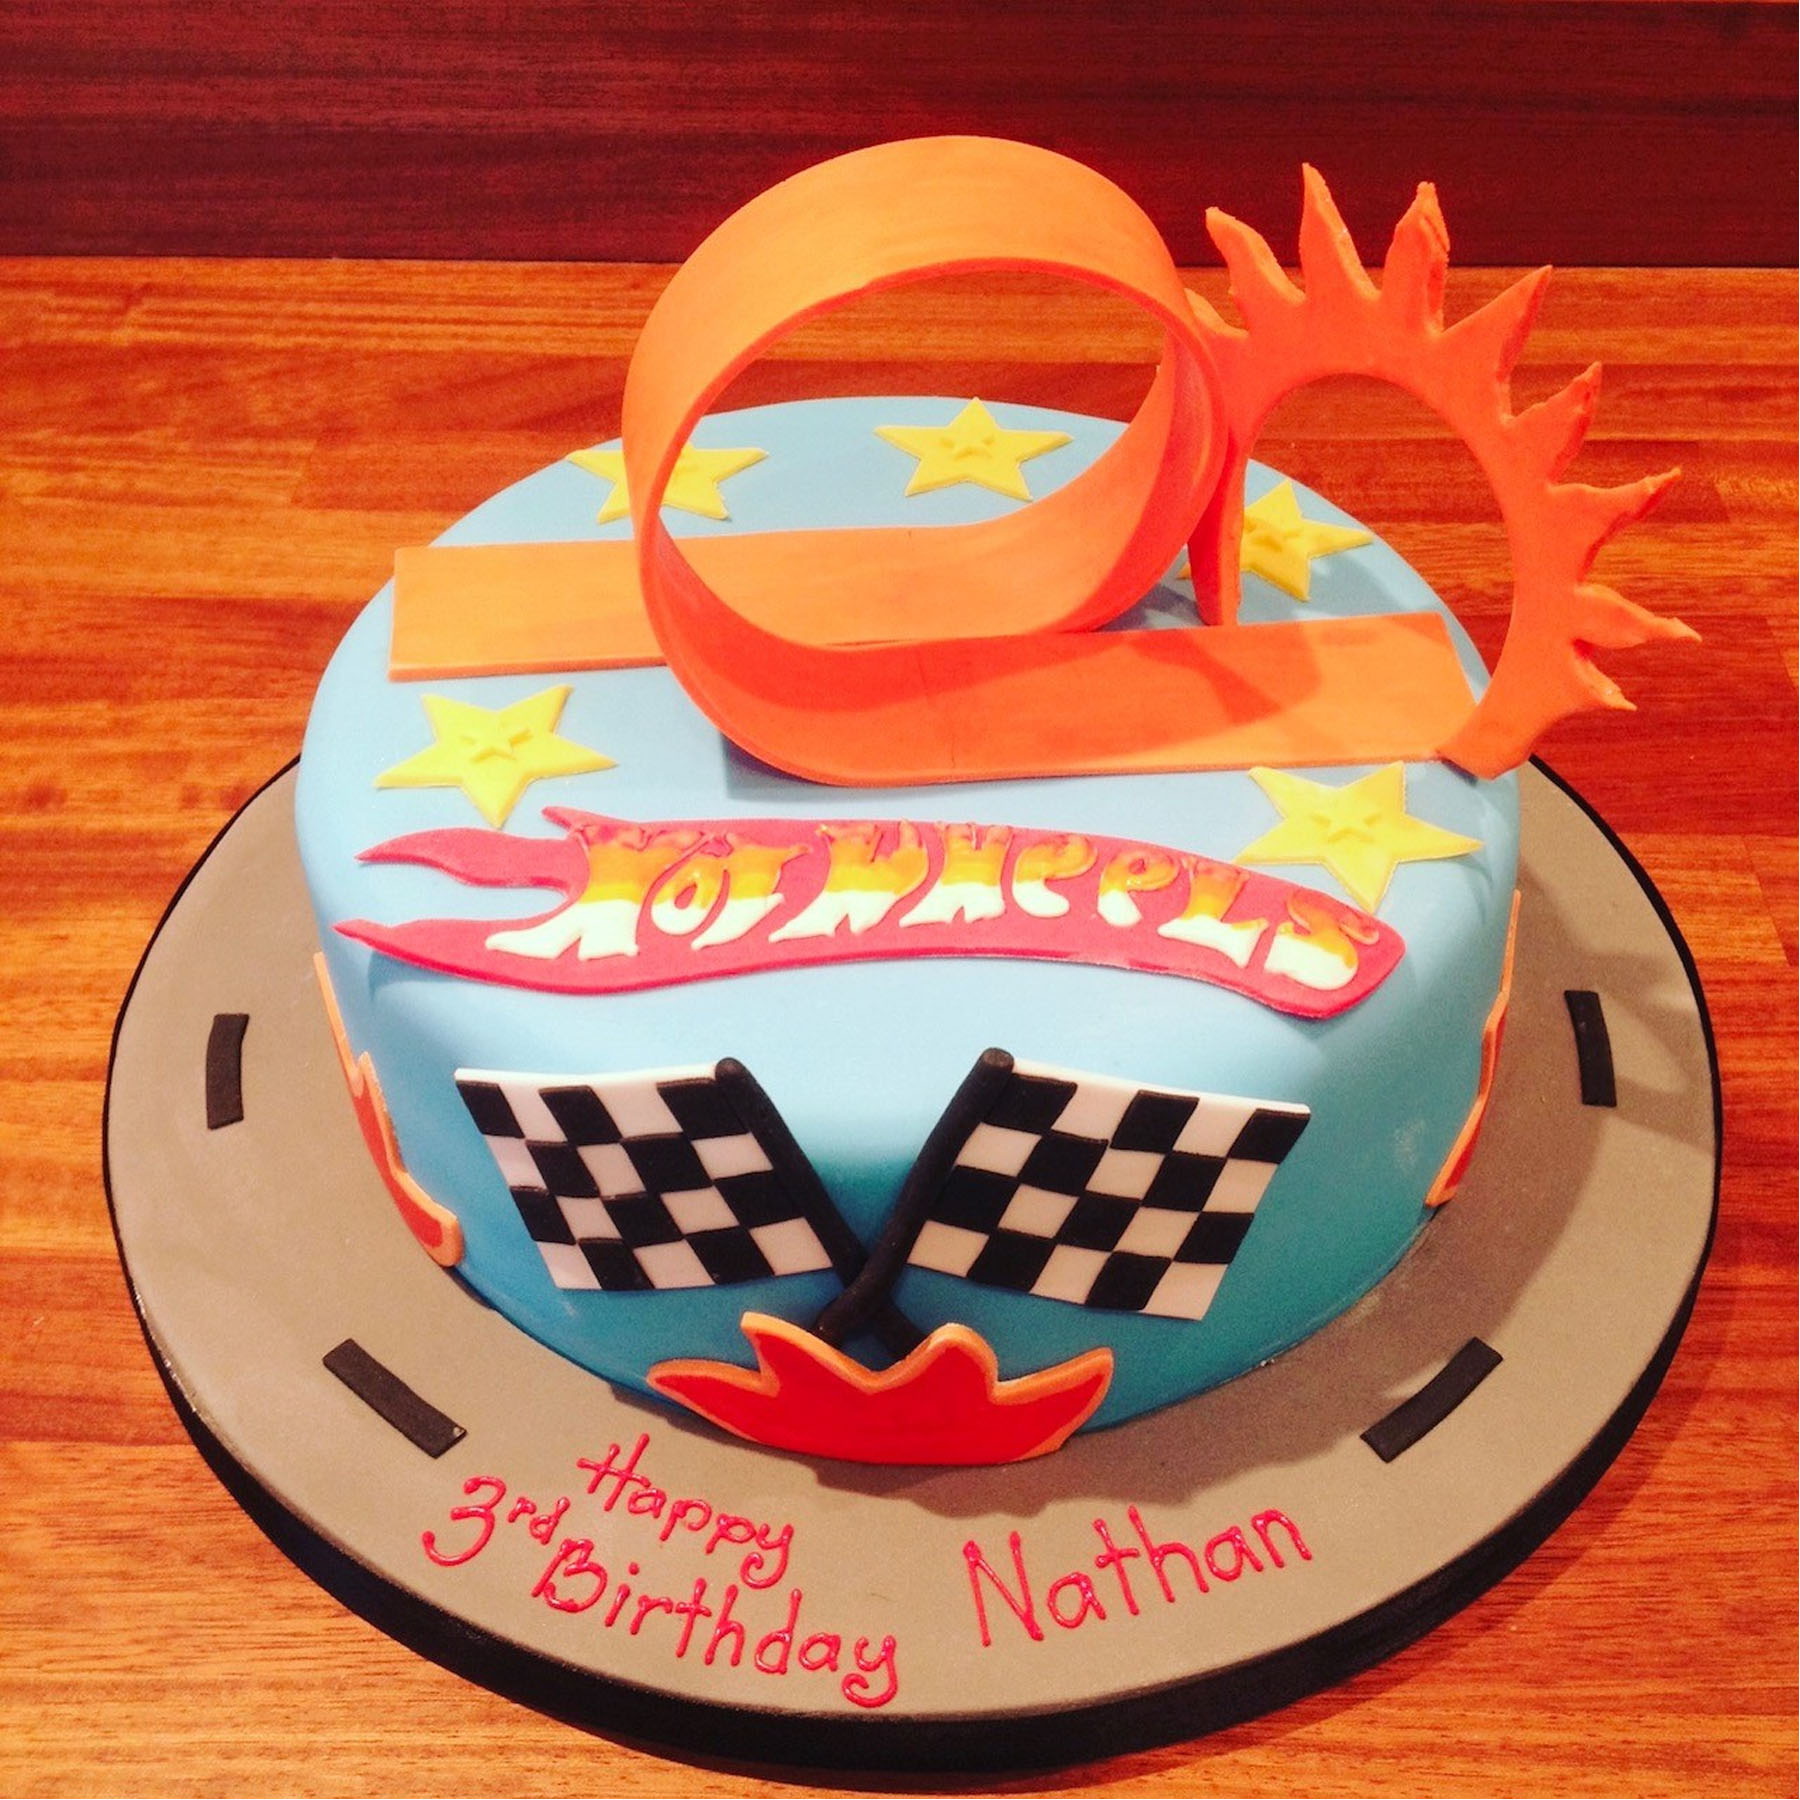 Fine Hot Wheels Birthday Cake Anns Designer Cakes Funny Birthday Cards Online Chimdamsfinfo